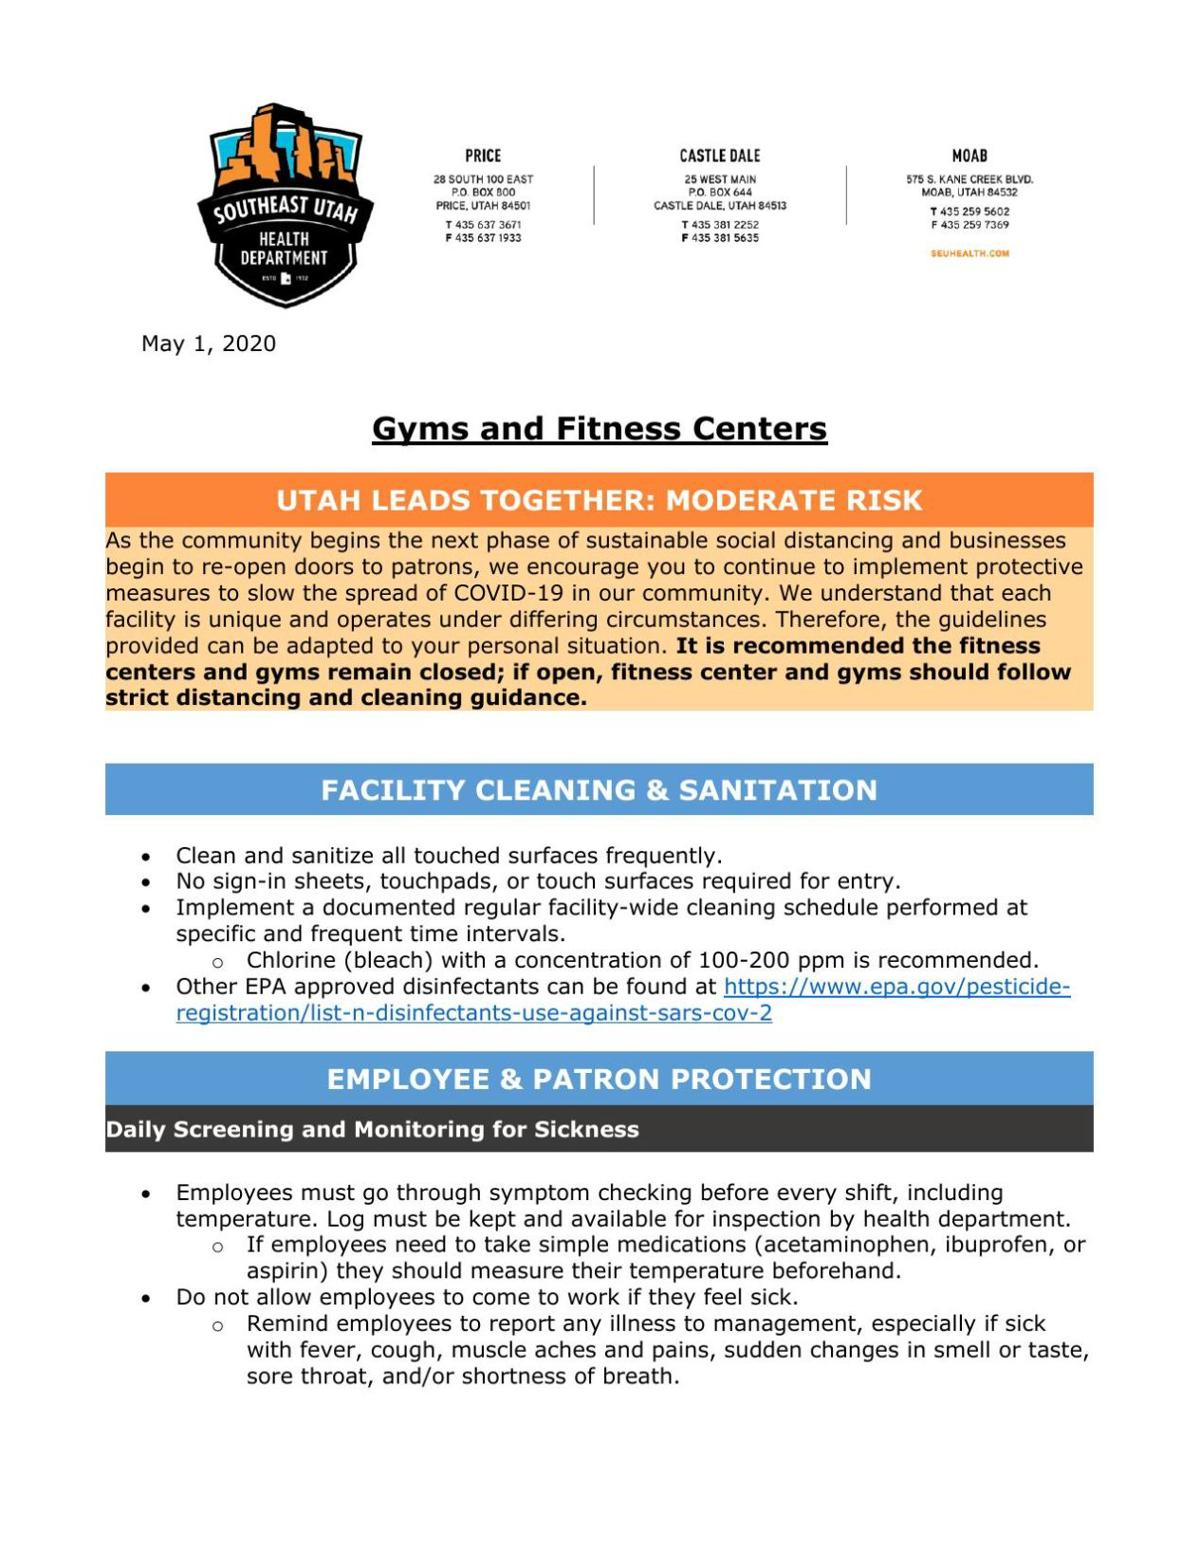 Gyms and Fitness Centers ModeratePhase.pdf